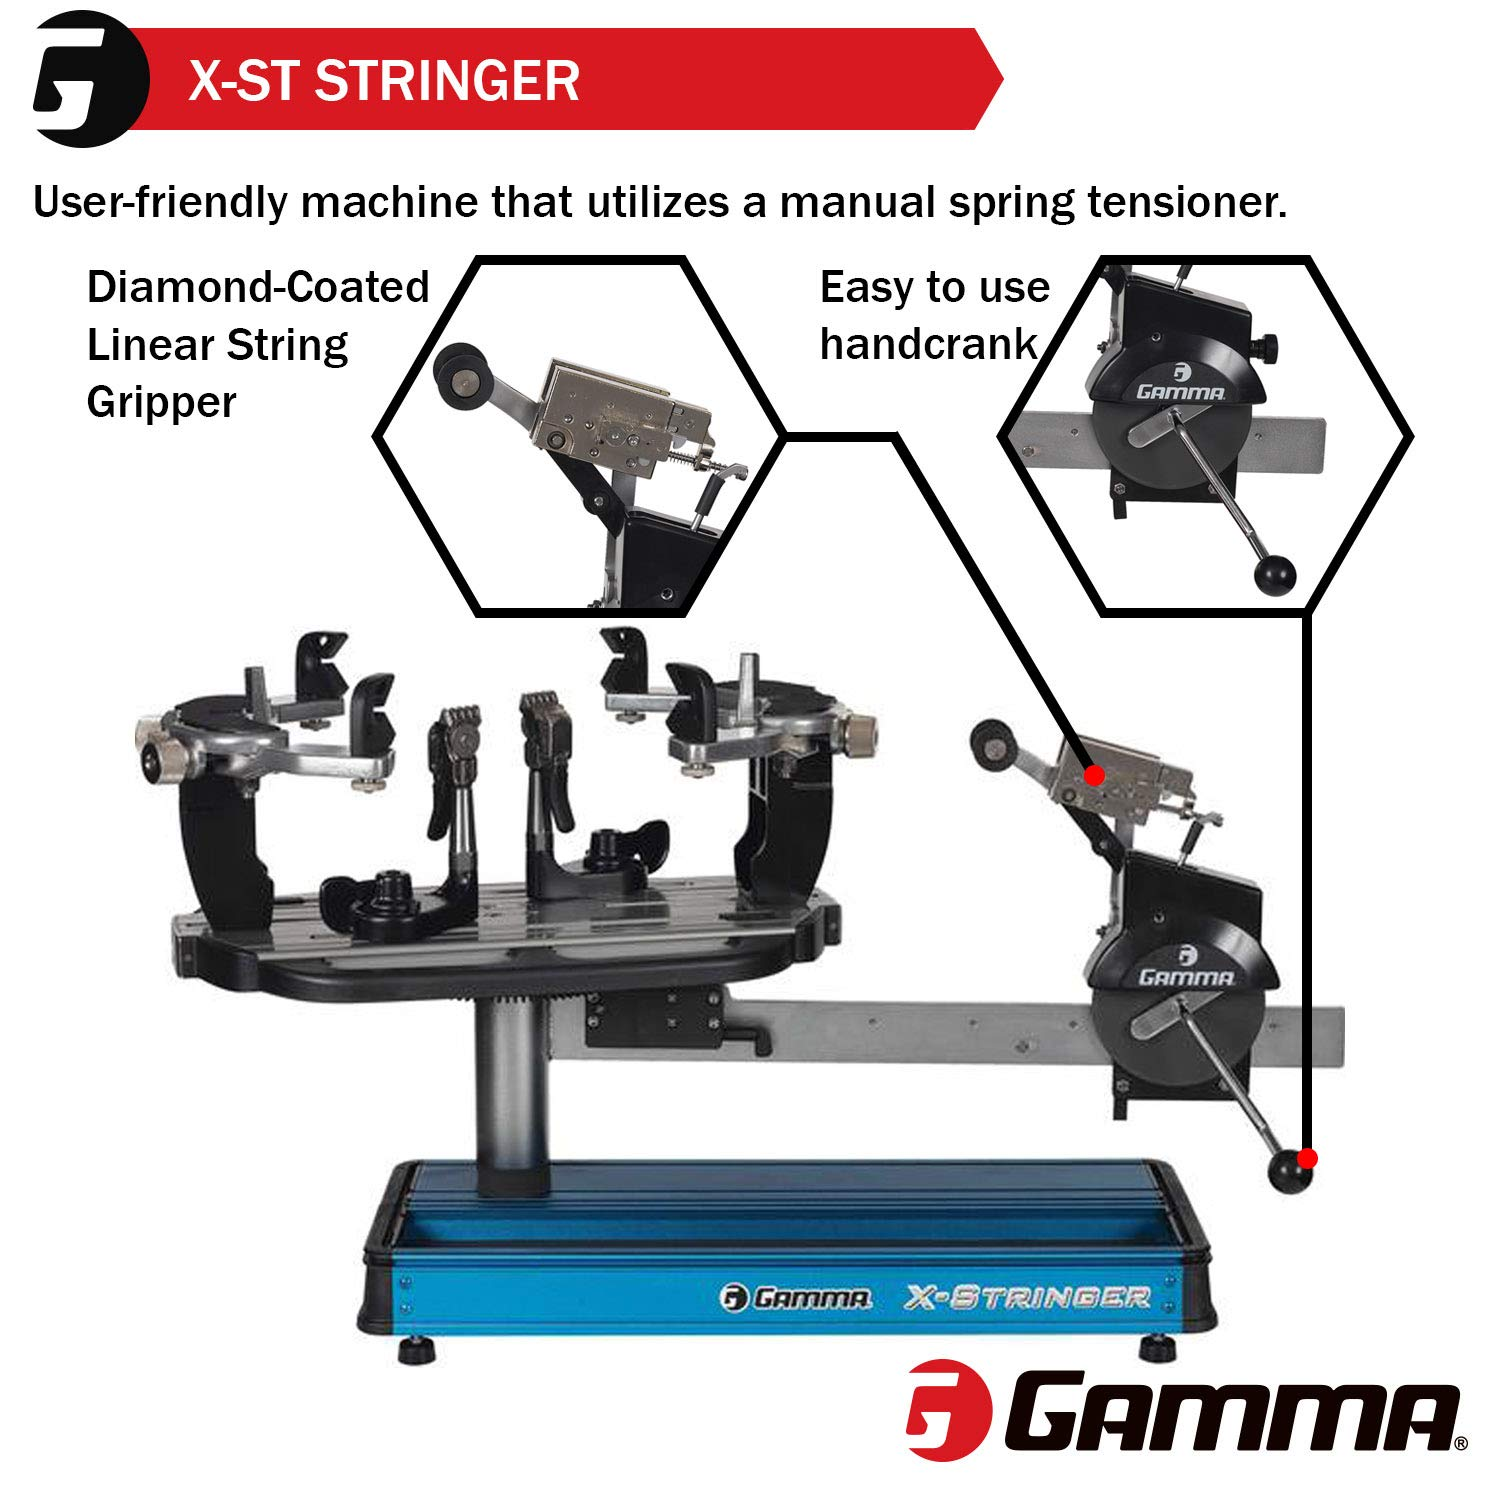 Tennis Stringing Machine >> Gamma X St Racquet Stringing Machine X Stringer X St Tennis String Machine With Stringing Tools And Accessories Tennis Squash And Badminton Racket